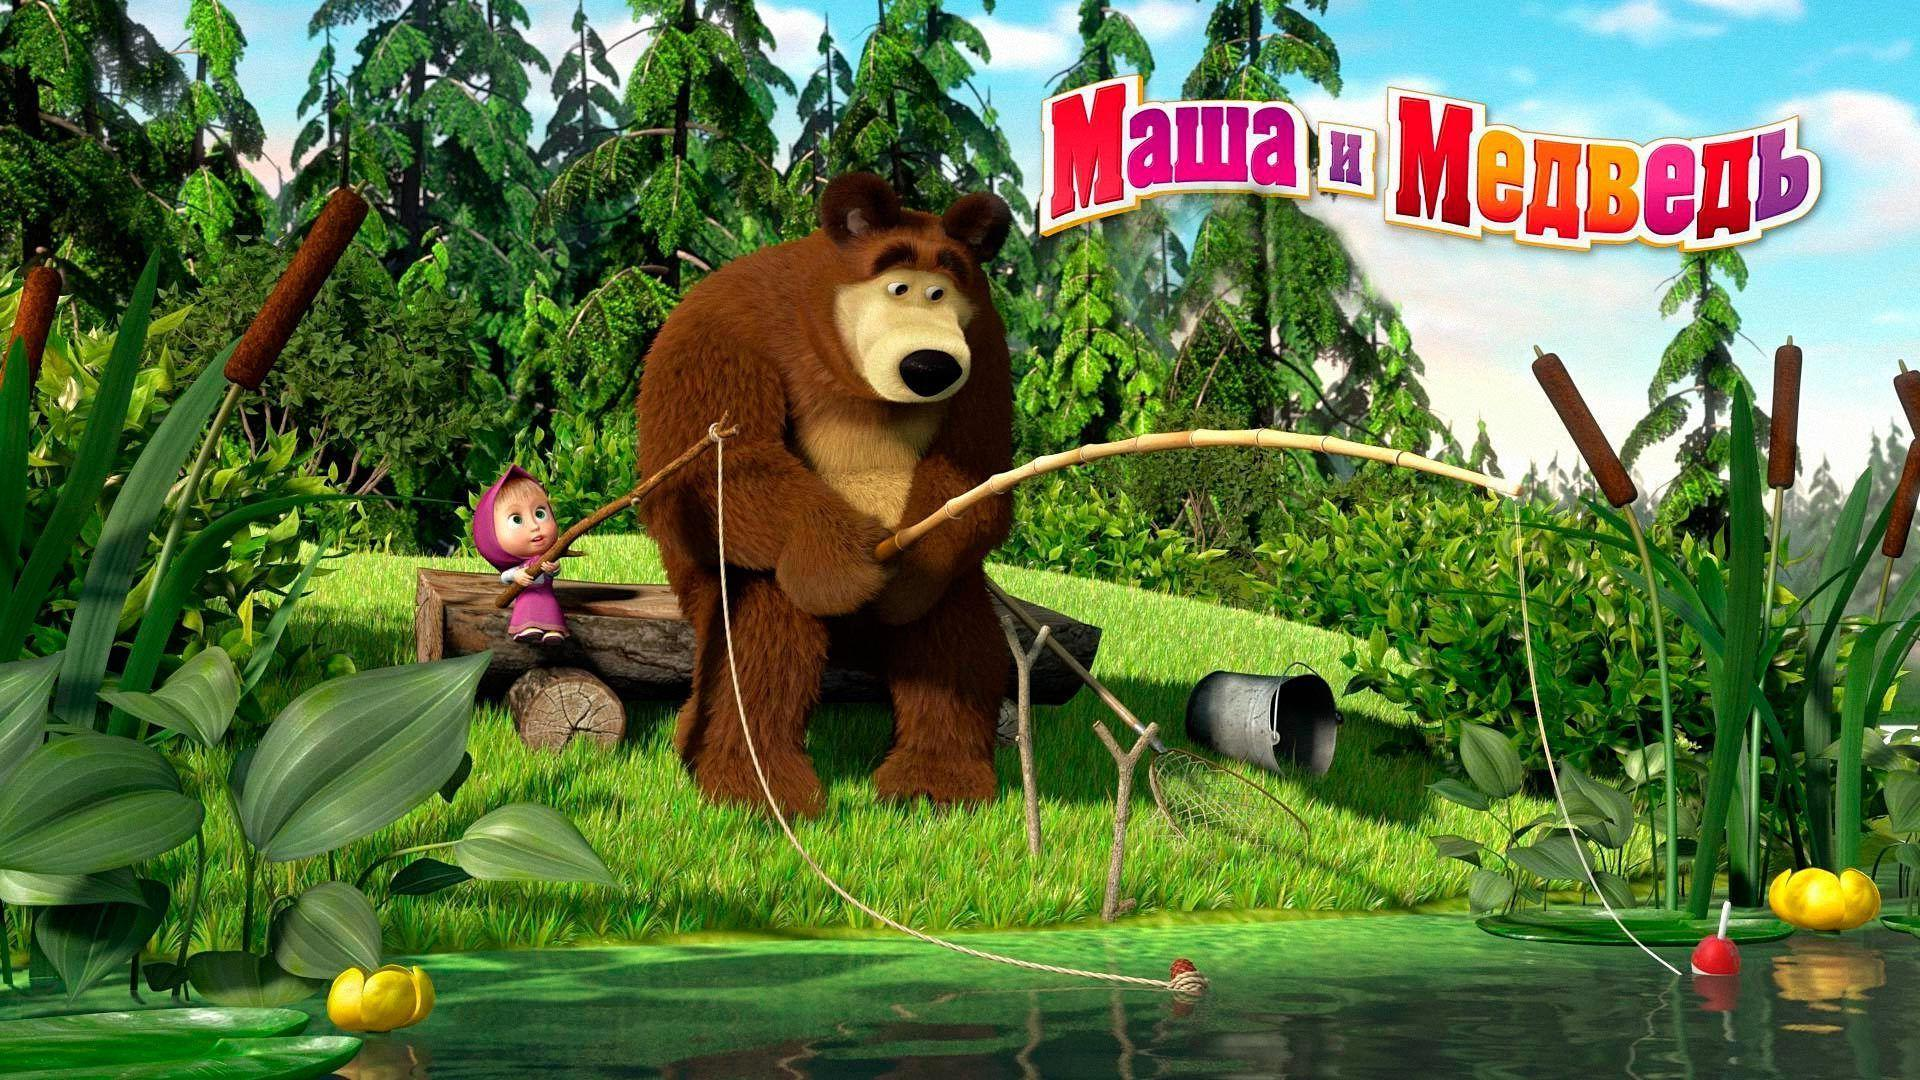 Masha And The Bear Wallpapers - Wallpaper Cave